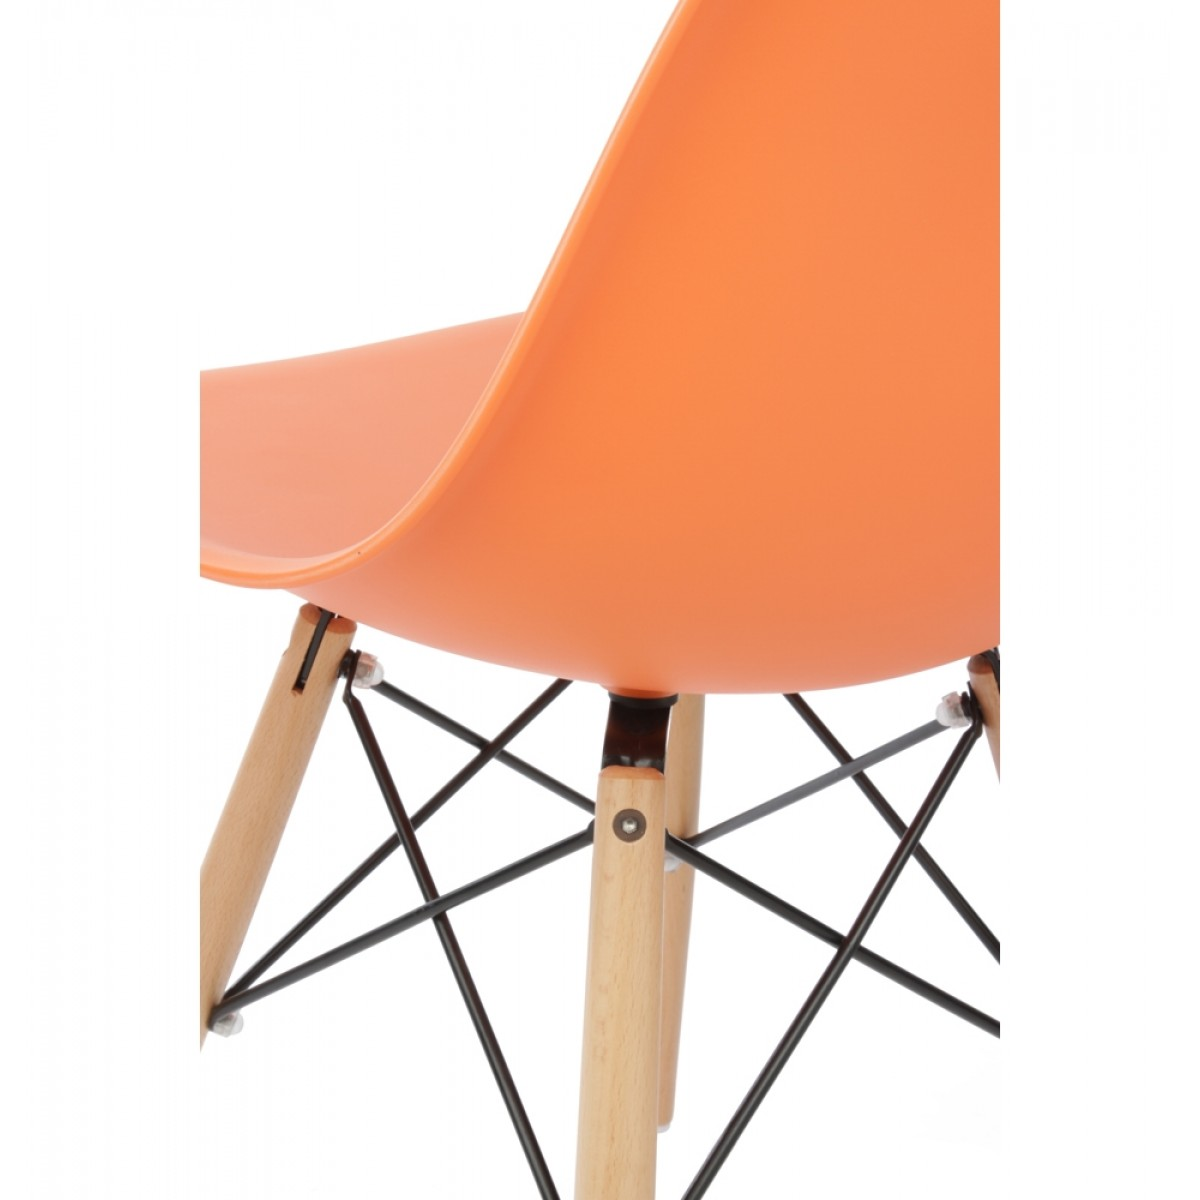 Eames style dsw molded orange plastic dining shell chair with wood eiffel legs - Discount eames chair ...